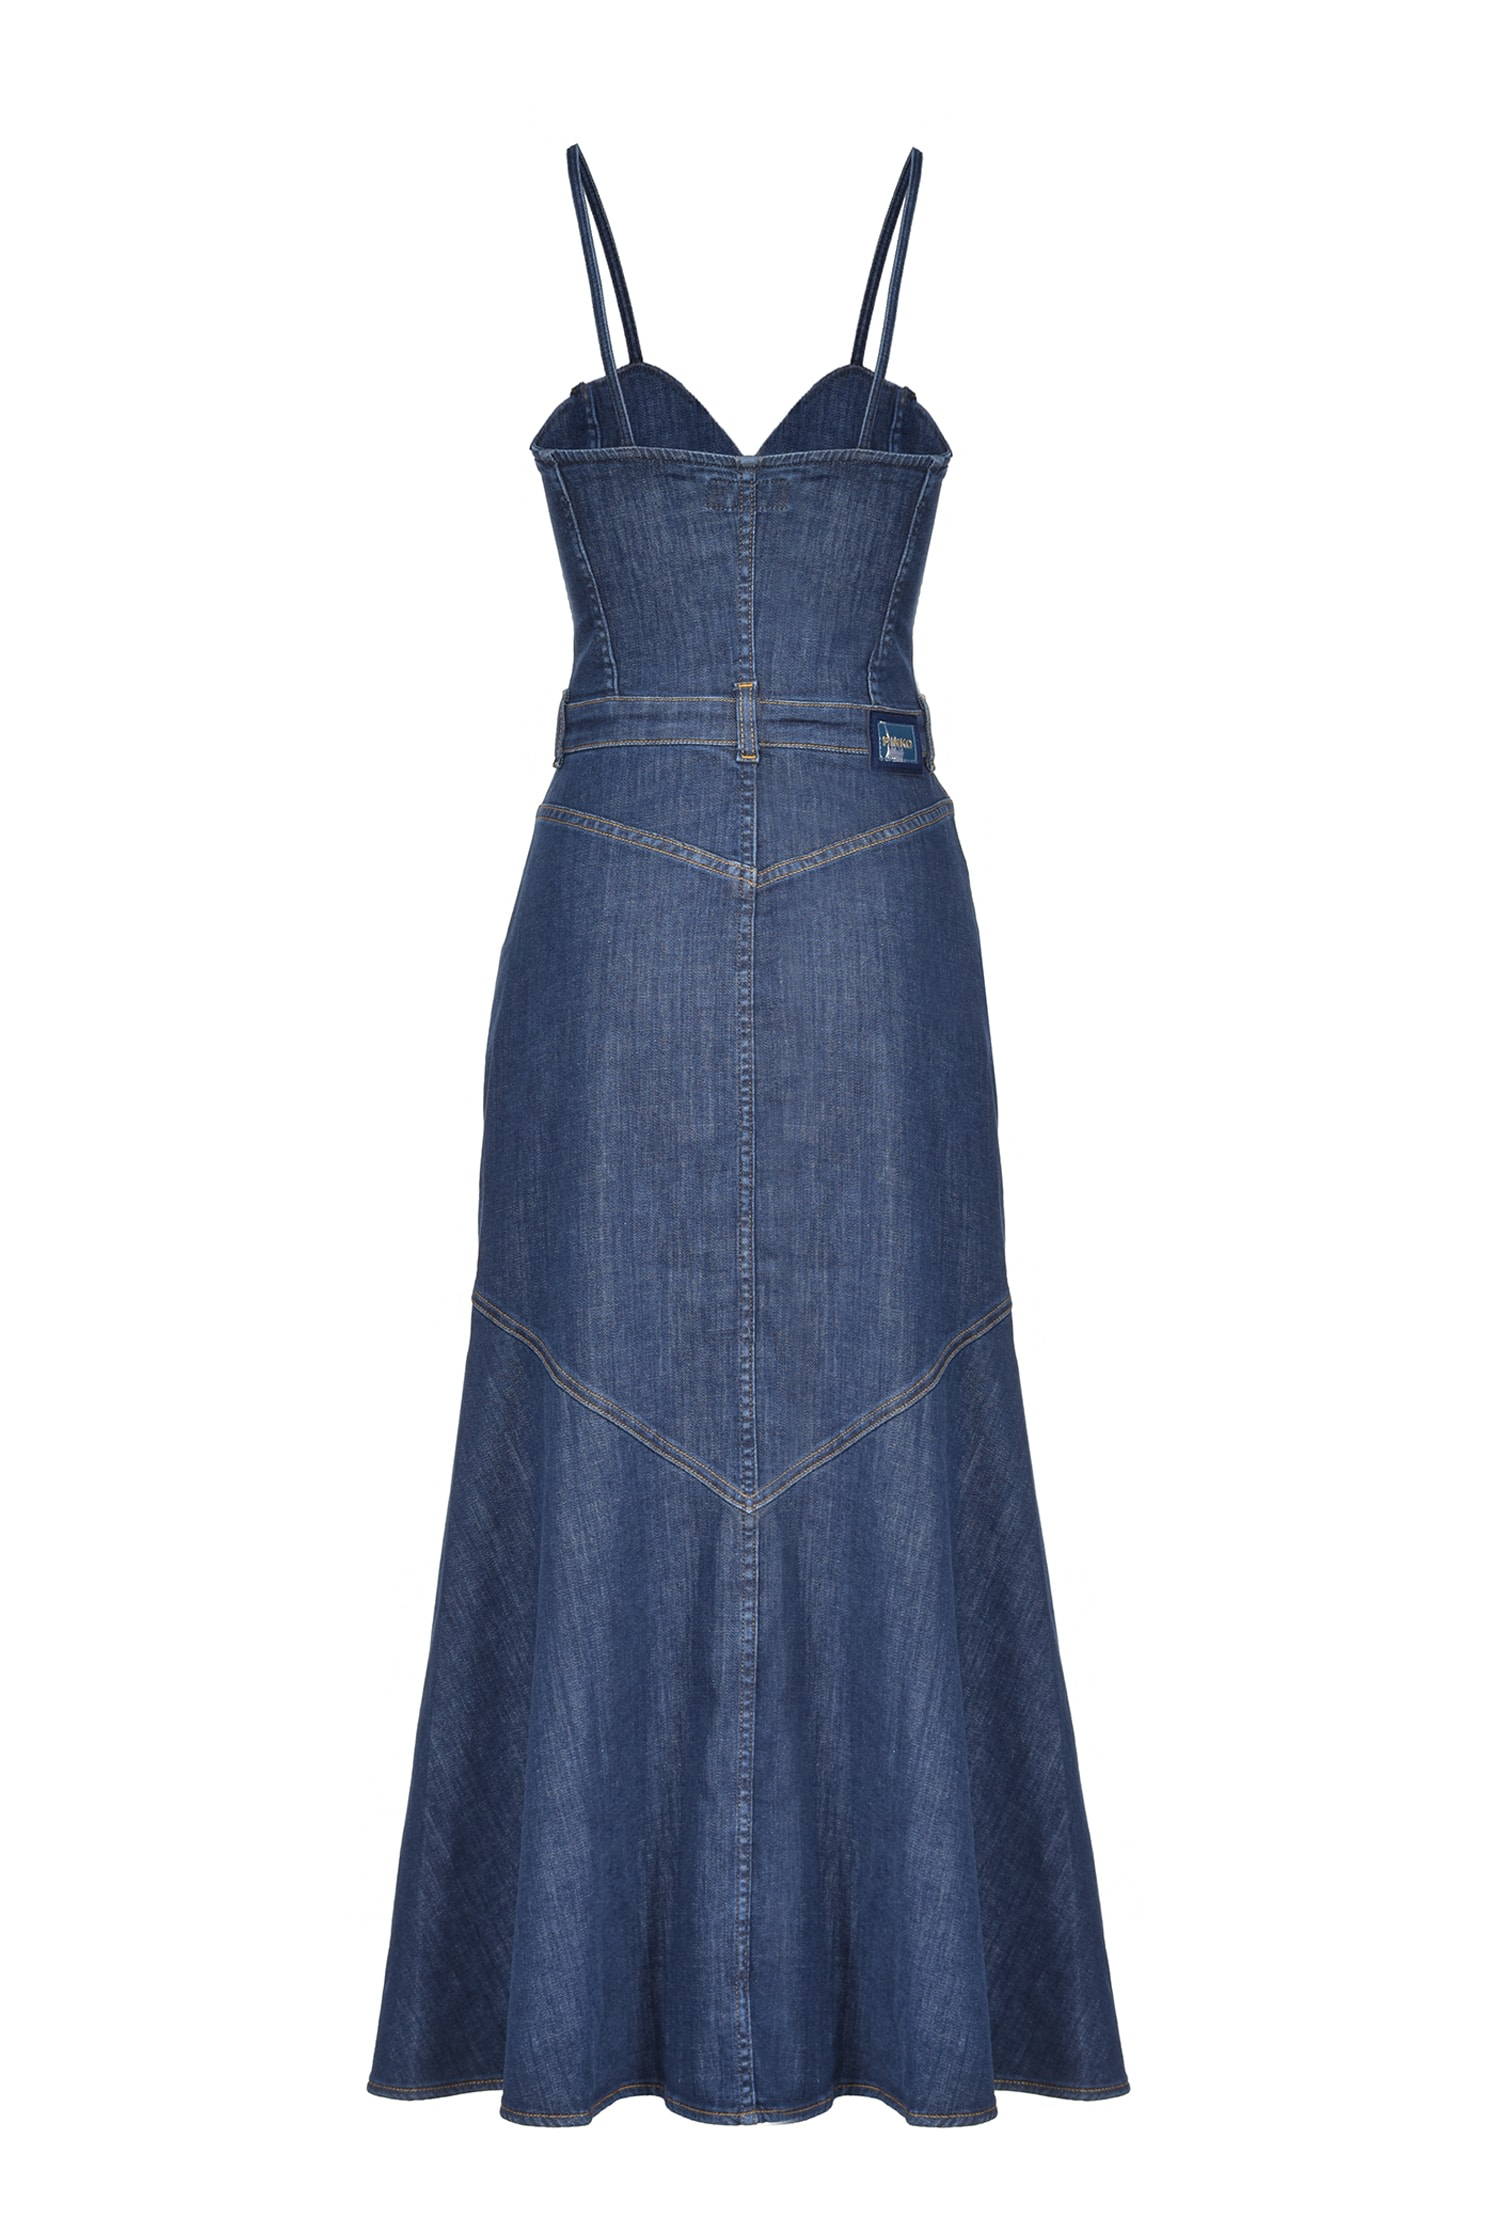 SHOPPING ON LINE PINKO SLIPDRESS MIDI IN DENIM POPPY NEW COLLECTION WOMEN'S SPRING SUMMER 2021